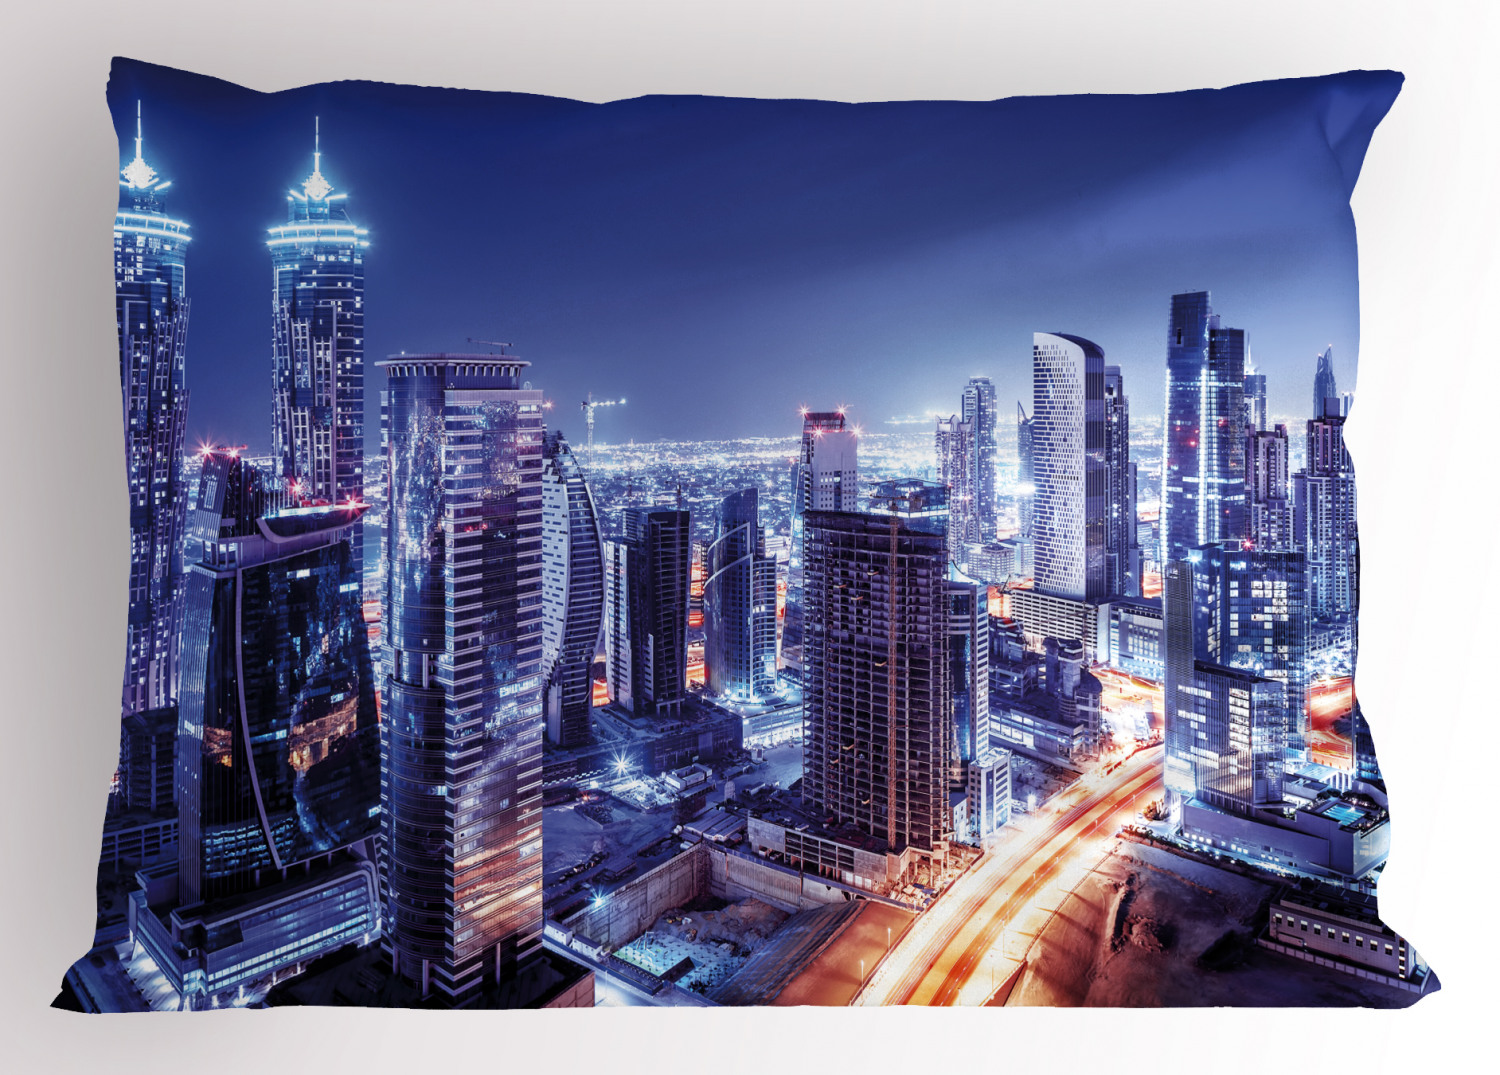 City Pillow Sham Dubai Downtown Uae Night Scenery Modern High Rise Buildings Travel Destination Decorative Standard Size Printed Pillowcase 26 X 20 Inches Violet Blue Orange By Ambesonne Walmart Com Walmart Com